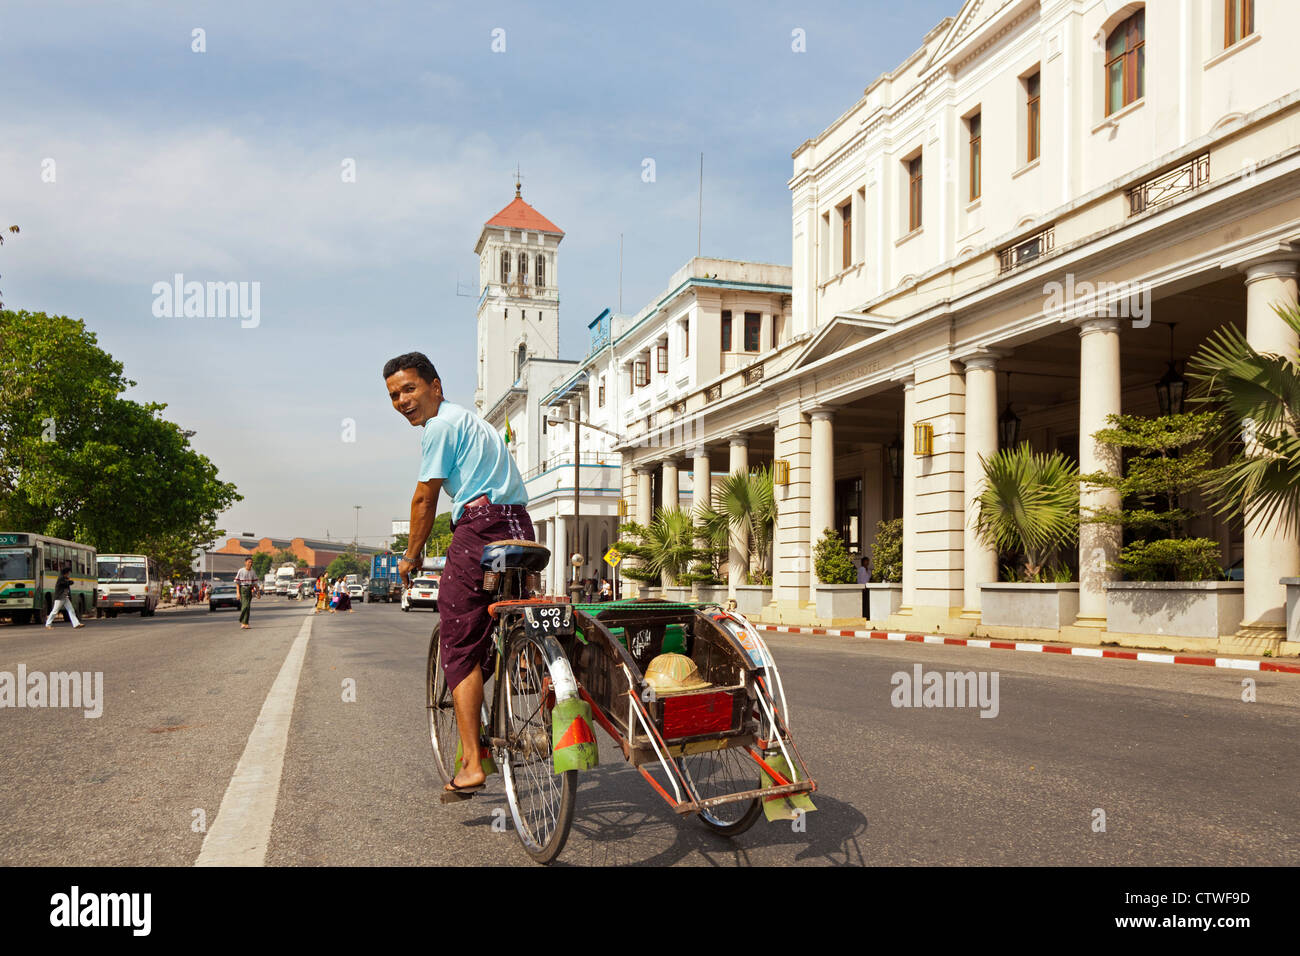 Bicycle Legal Stock Photos Amp Bicycle Legal Stock Images